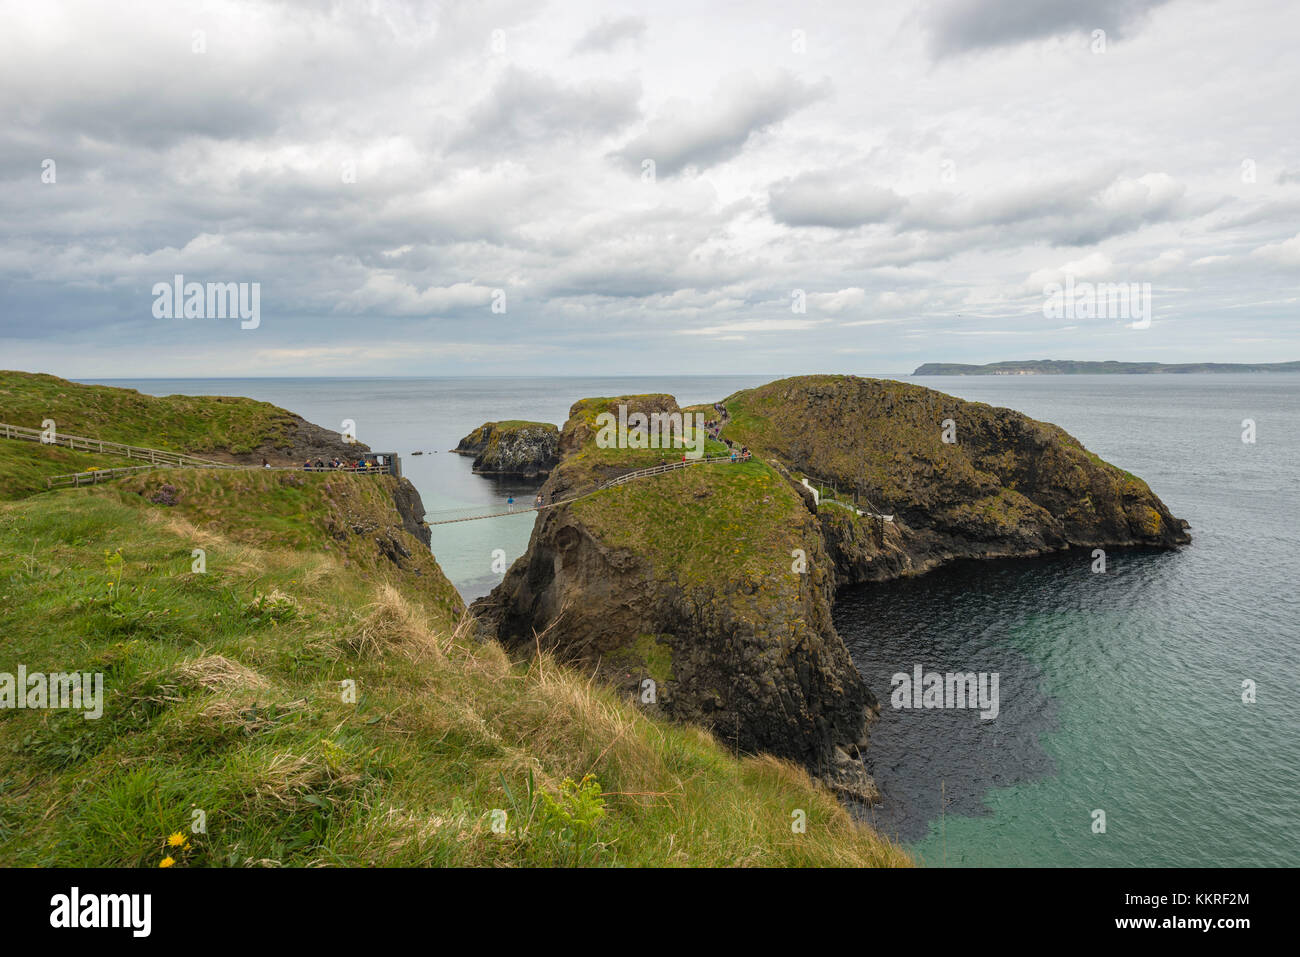 The Carrick a Rede Rope Bridge, Northern Ireland, Antrim, Ballycastle, Ballintoy, United Kingdom. - Stock Image